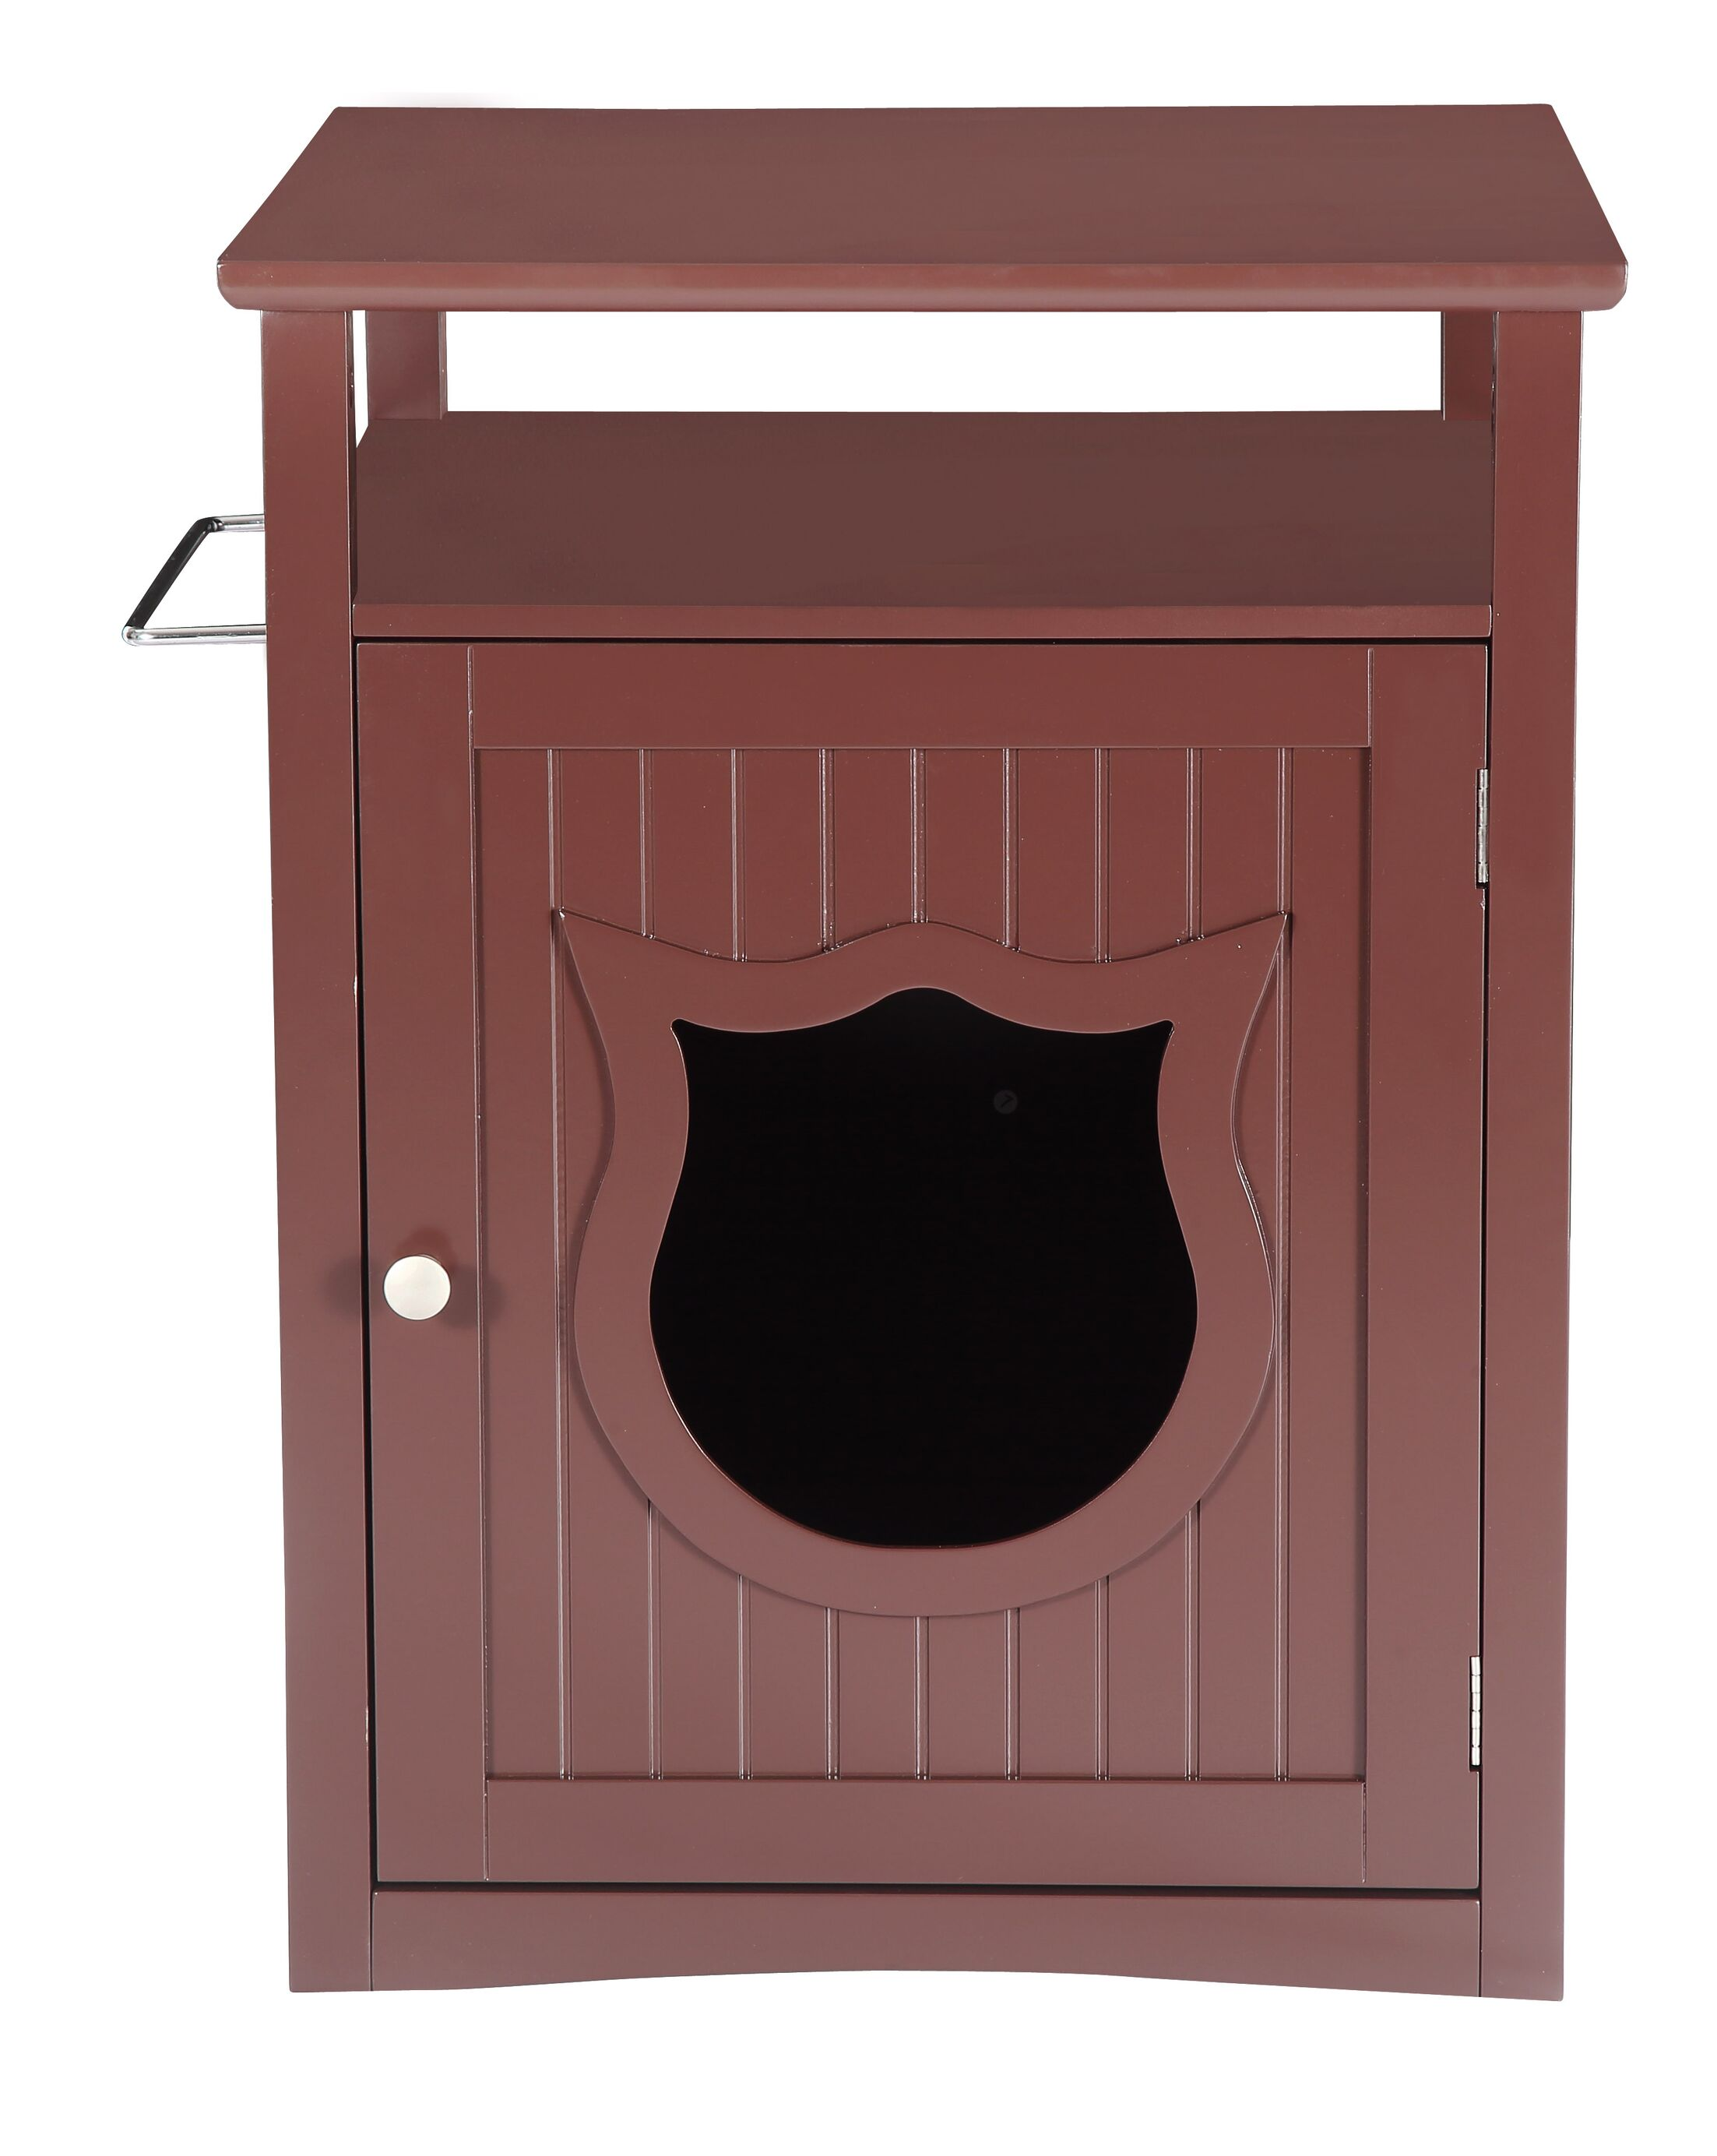 Kitty Cat Litter Box Color: Brown